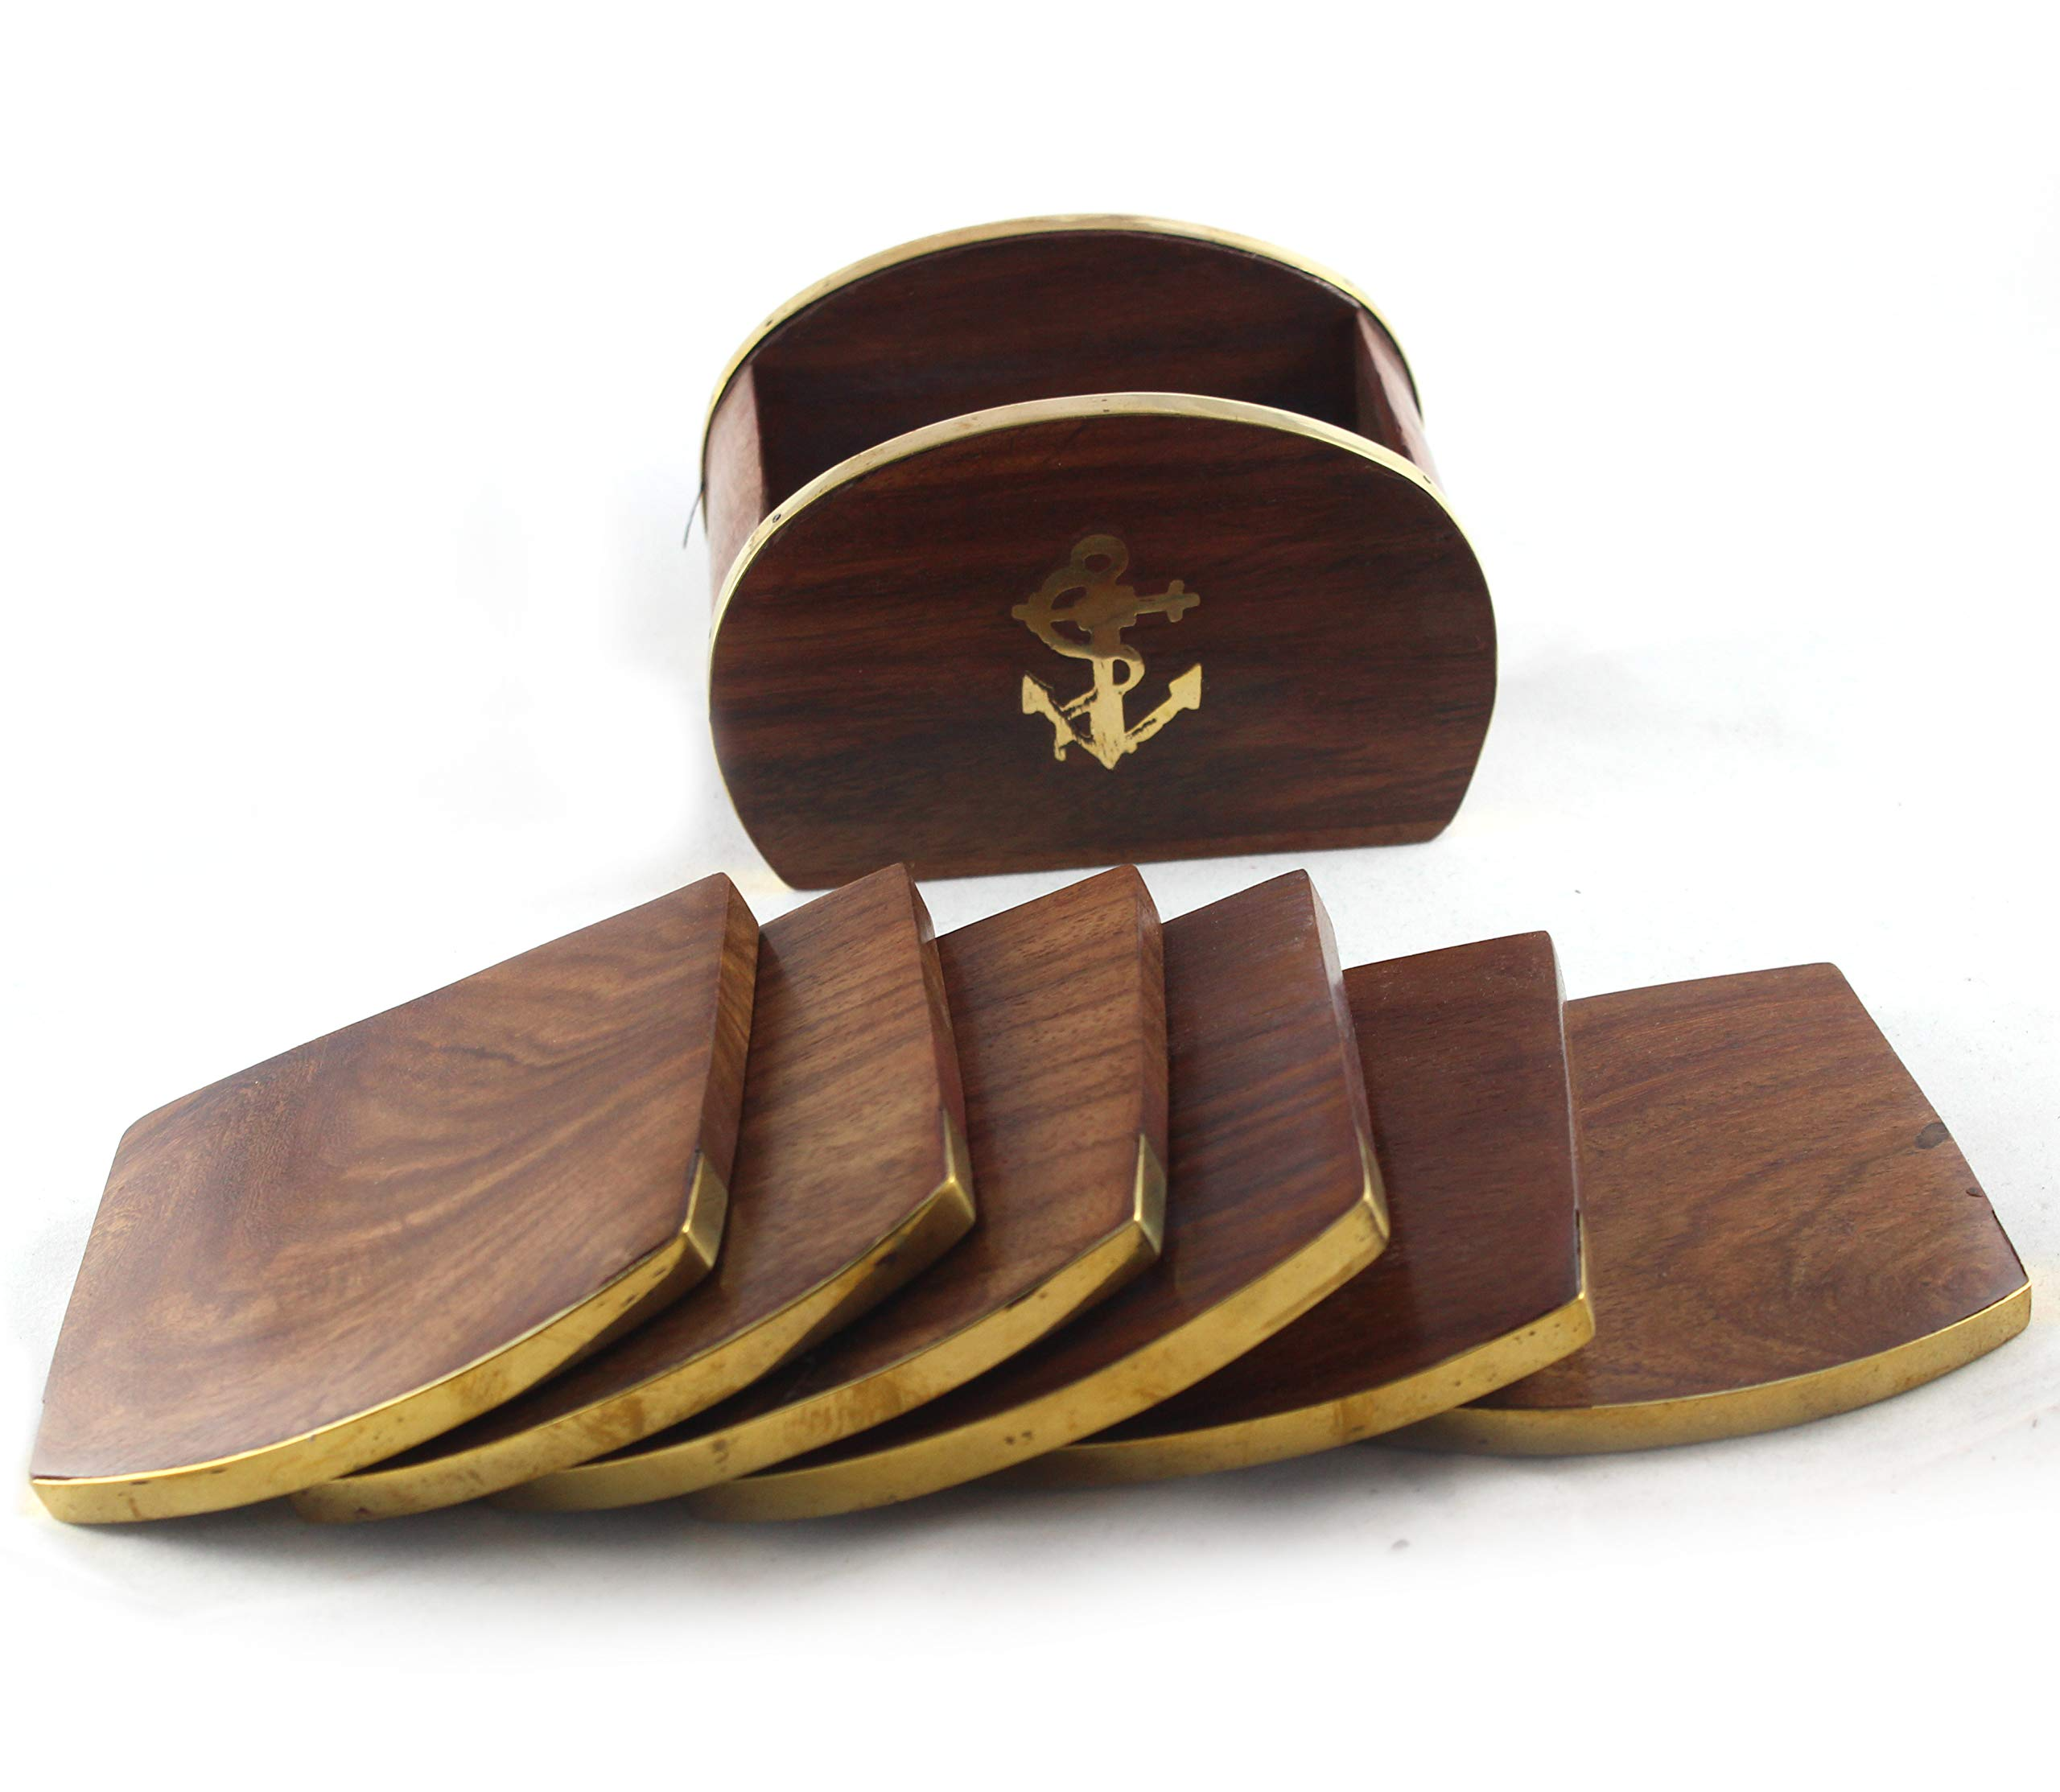 collectiblesBuy Antique Wooden Drink Coasters Handmade Tea & Coffee Coasters Set of 6 Brown Wood with case Premium